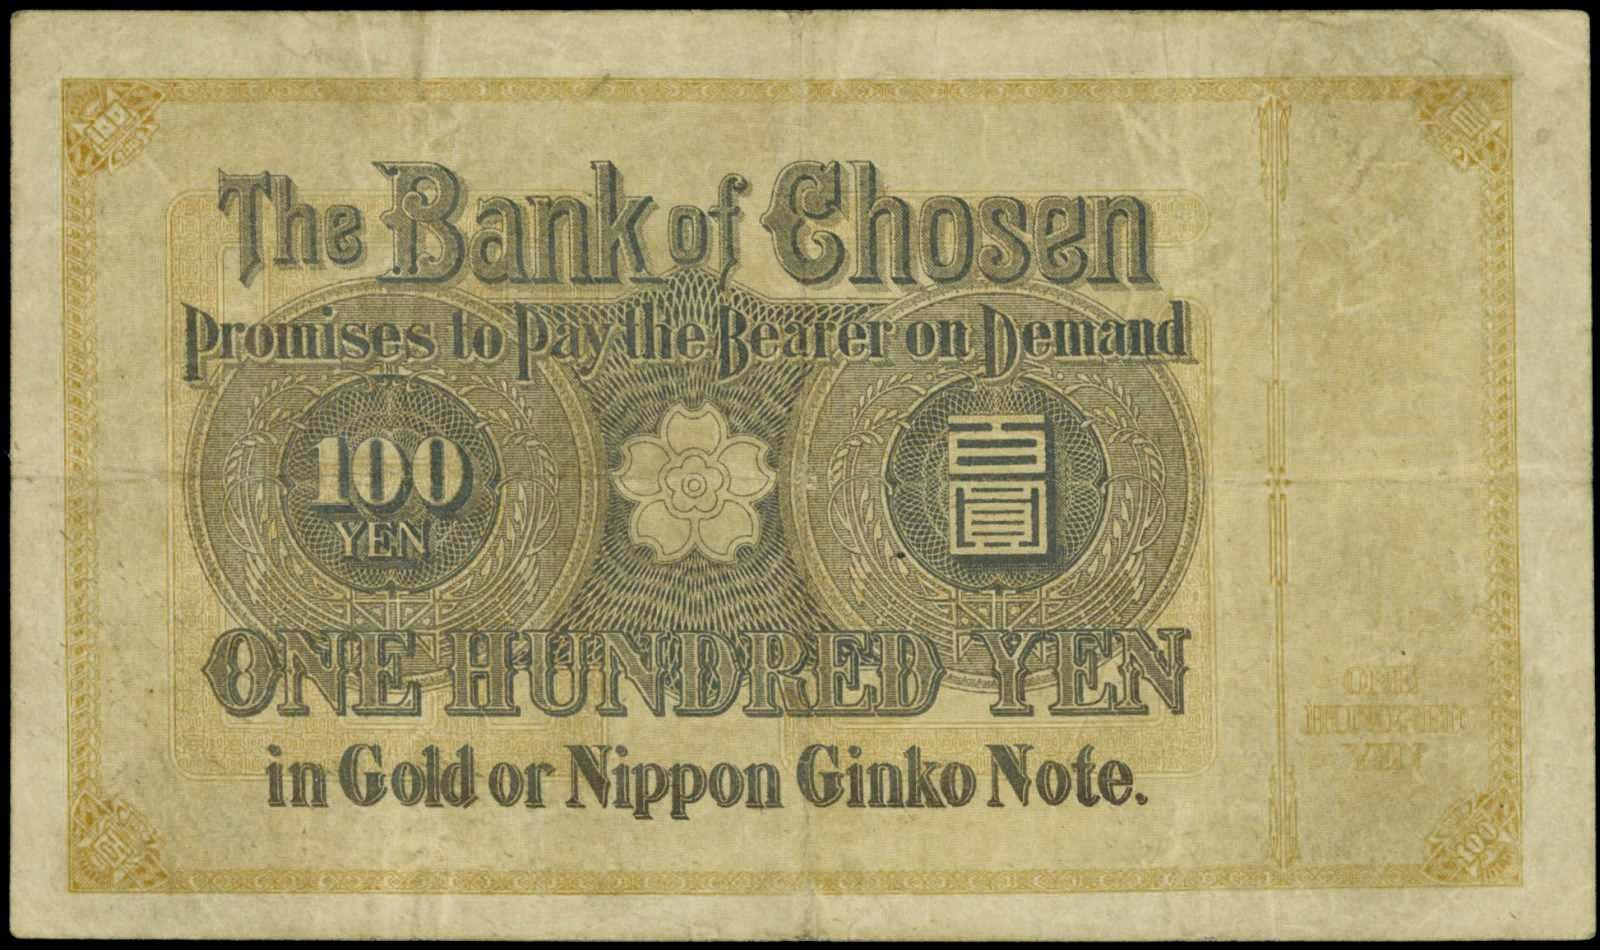 Korea banknotes 100 Yen in Gold or Nippon Ginko Note 1911 Bank of Chosen